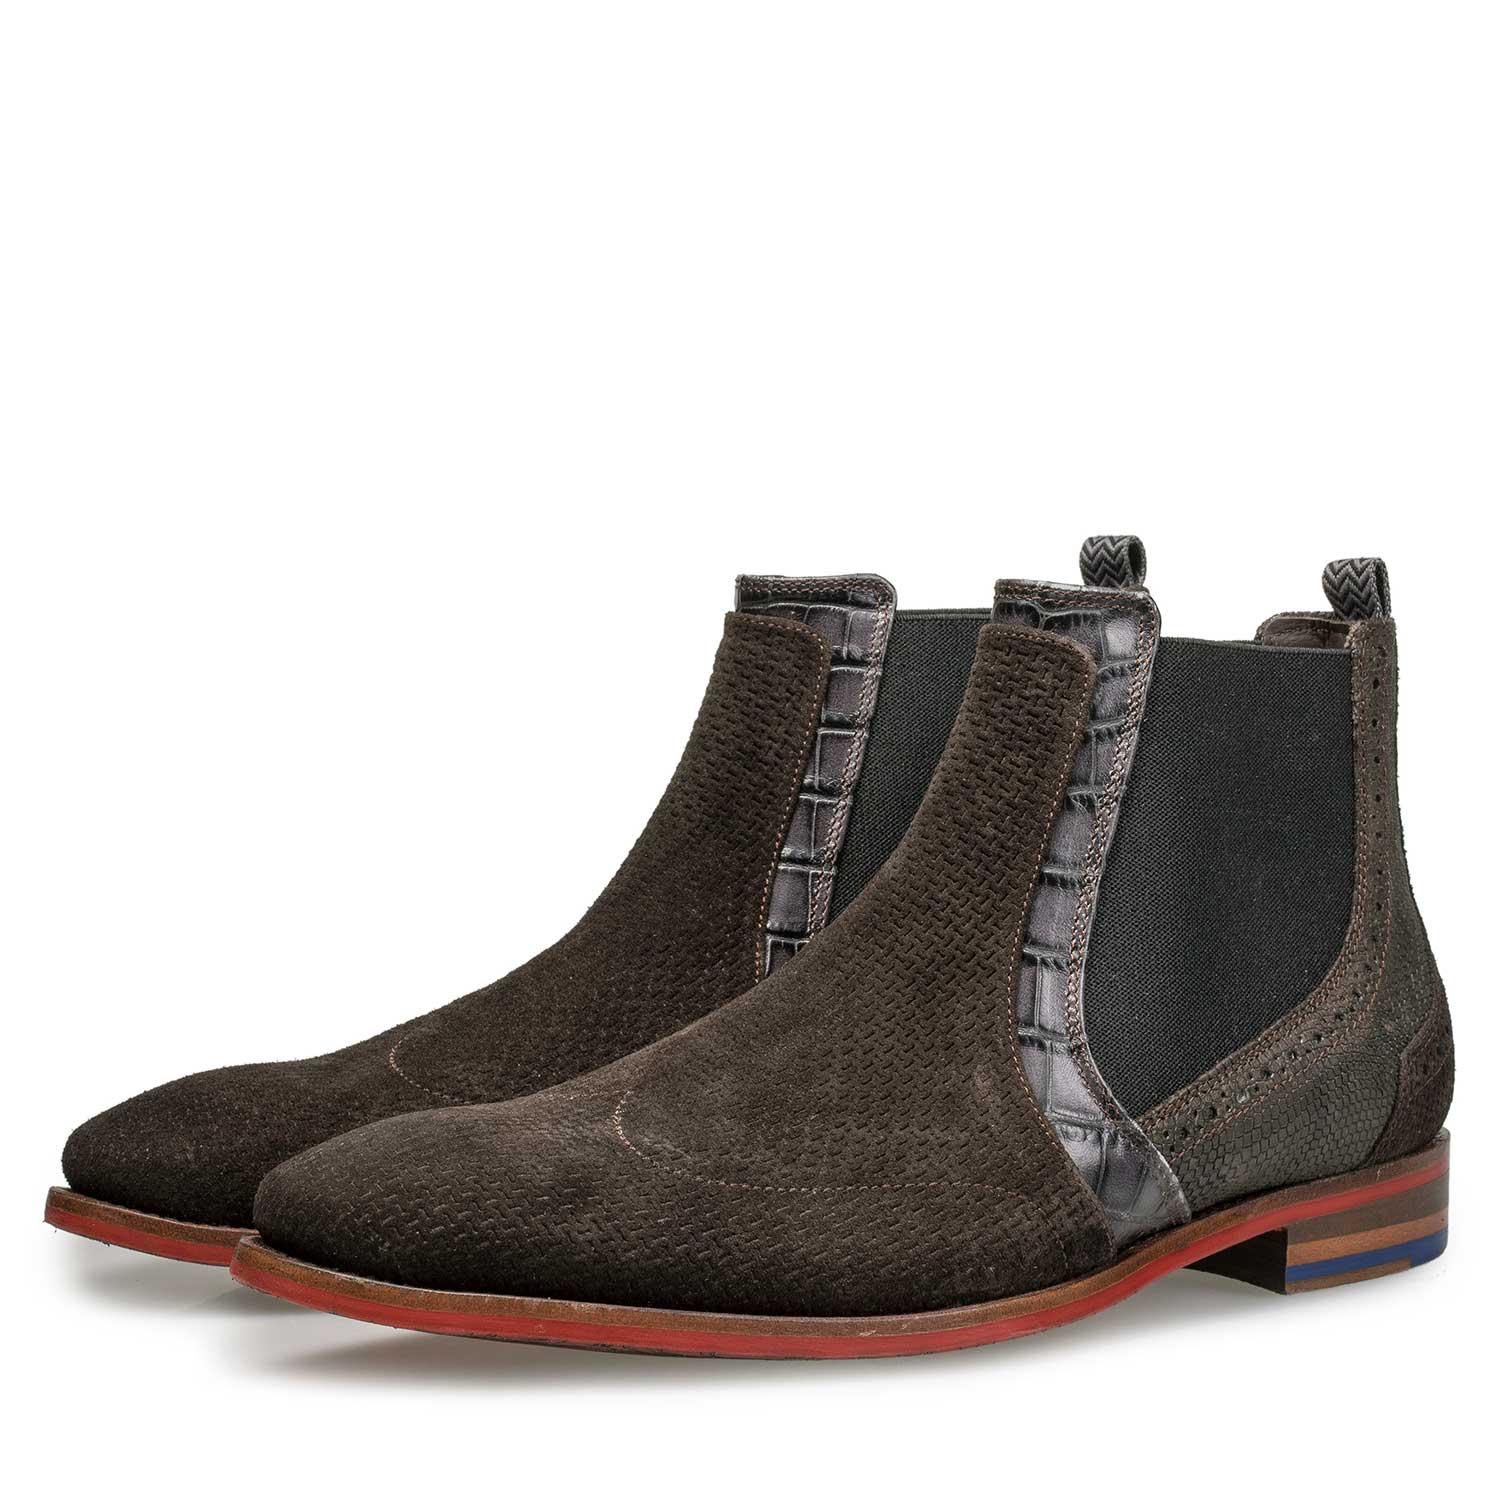 20055/07 - Brown Chelsea boot with structural pattern